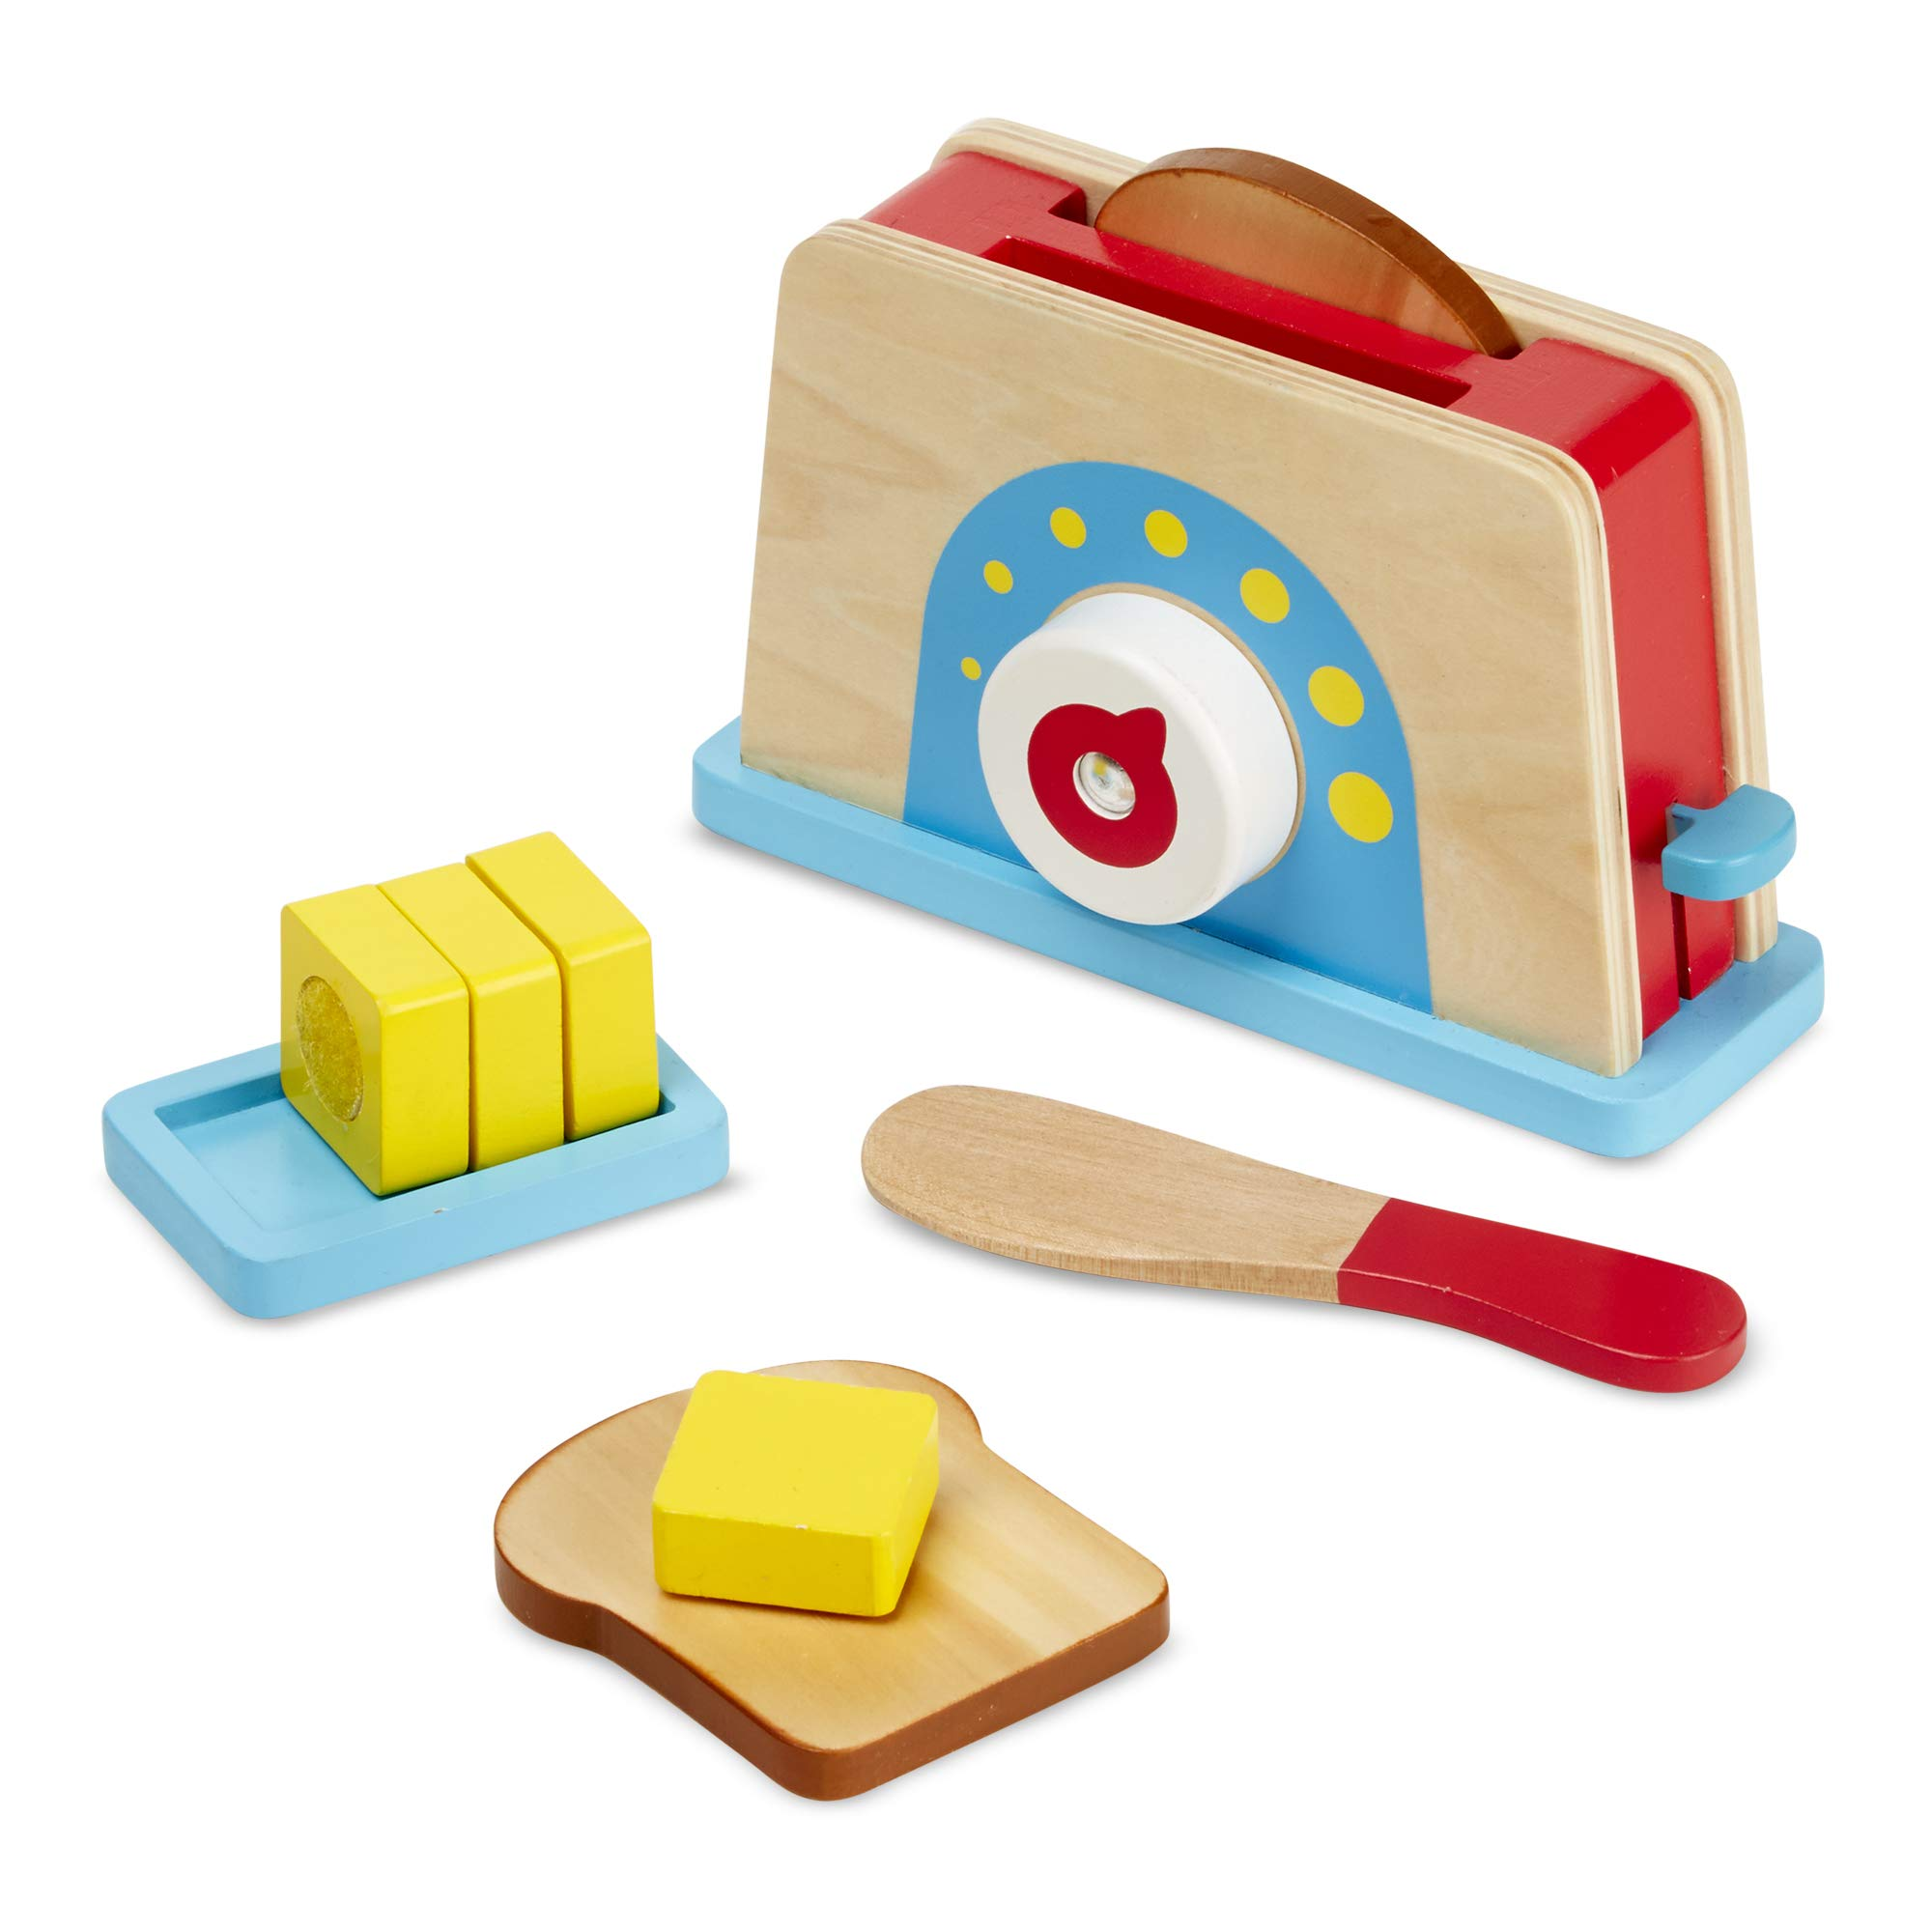 Melissa & Doug Bread and Butter Toaster Set (9 pcs) - Wooden Play Food and Kitchen Accessories by Melissa & Doug